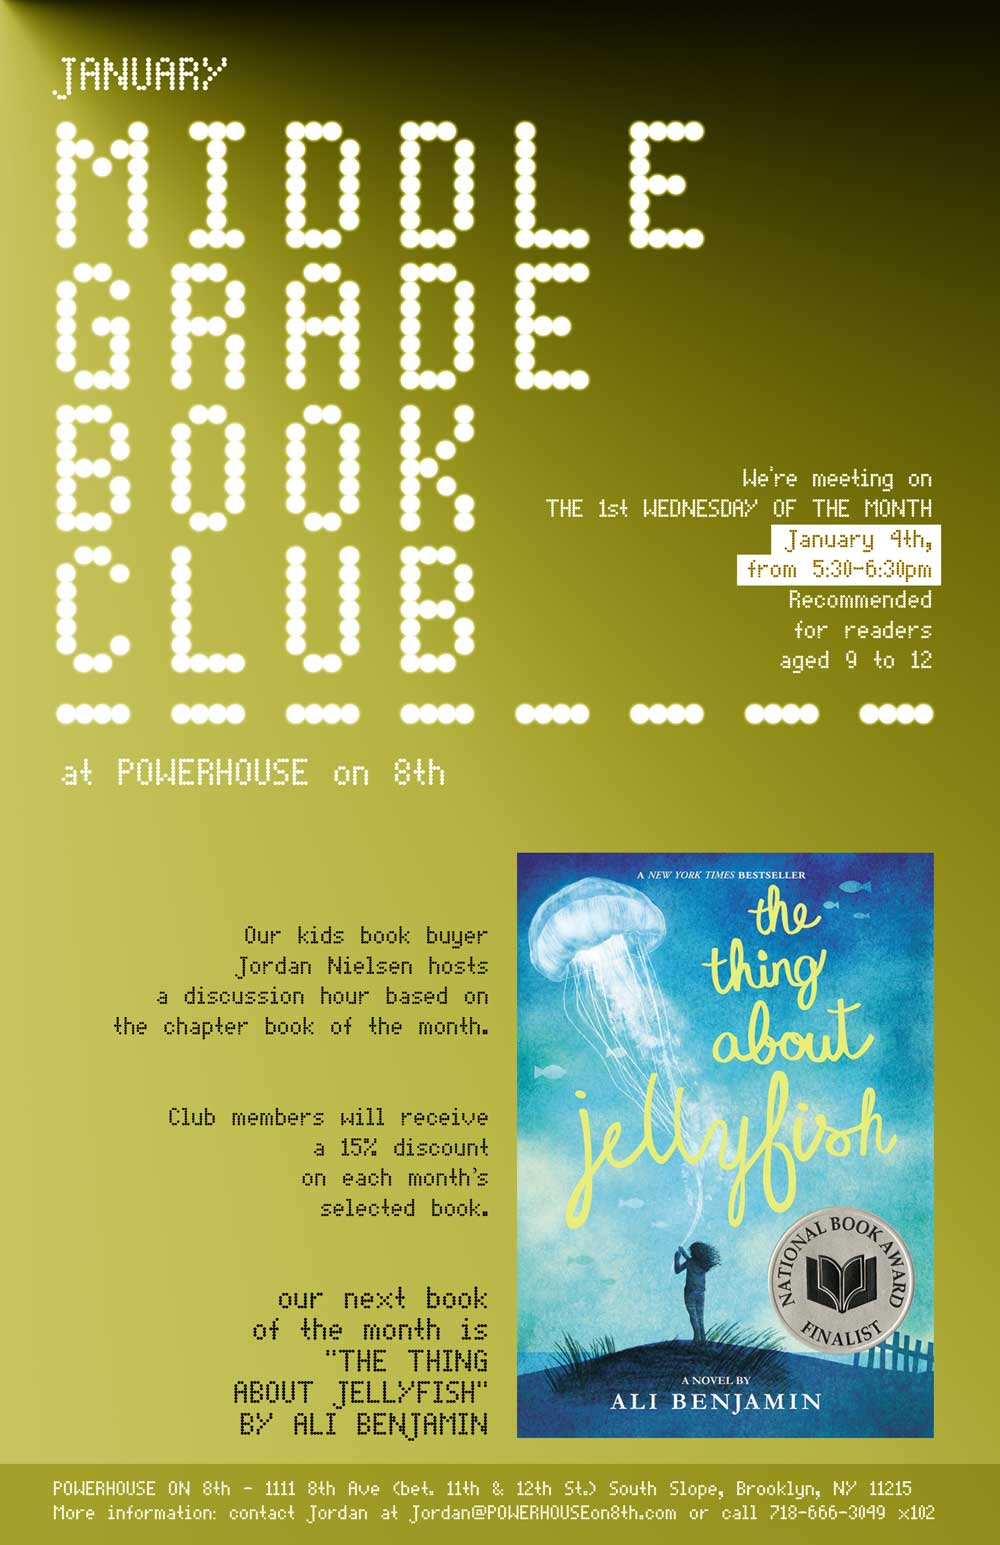 Middle Grade Book Club: The Thing About Jellyfish by Ali Benjamin